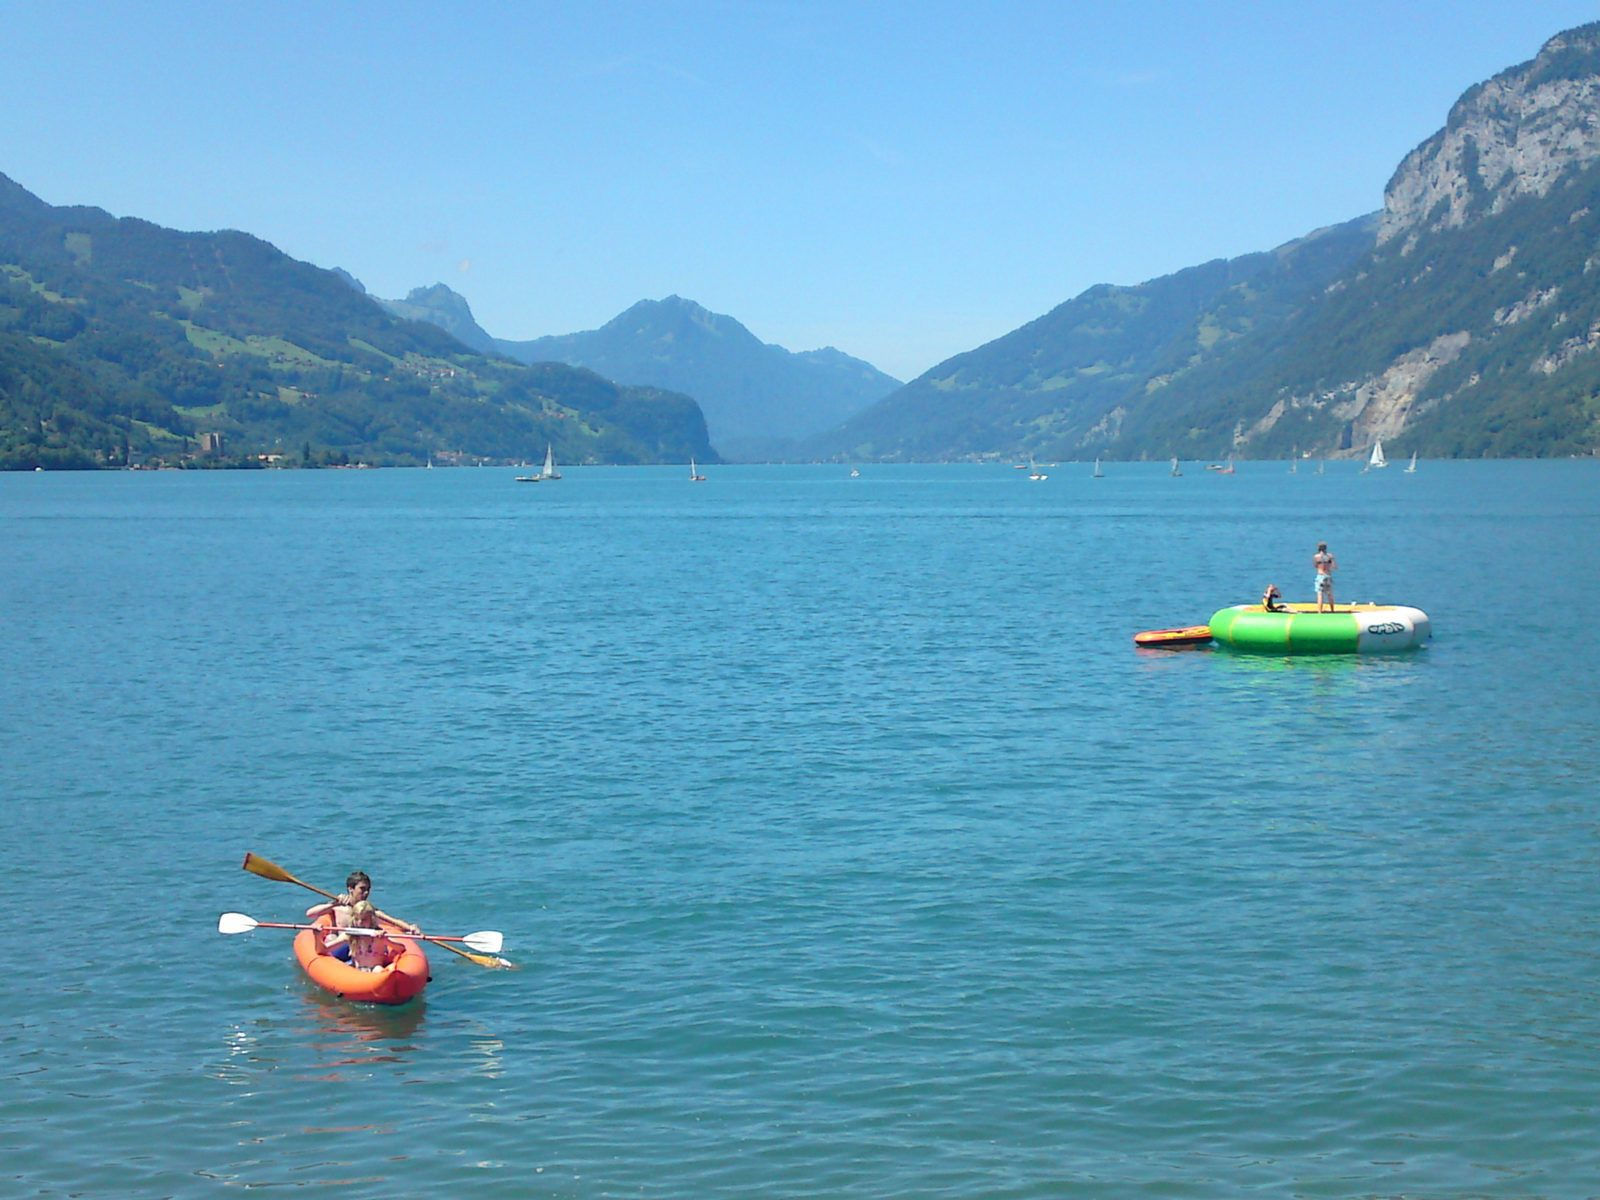 Water sports on the Walensee